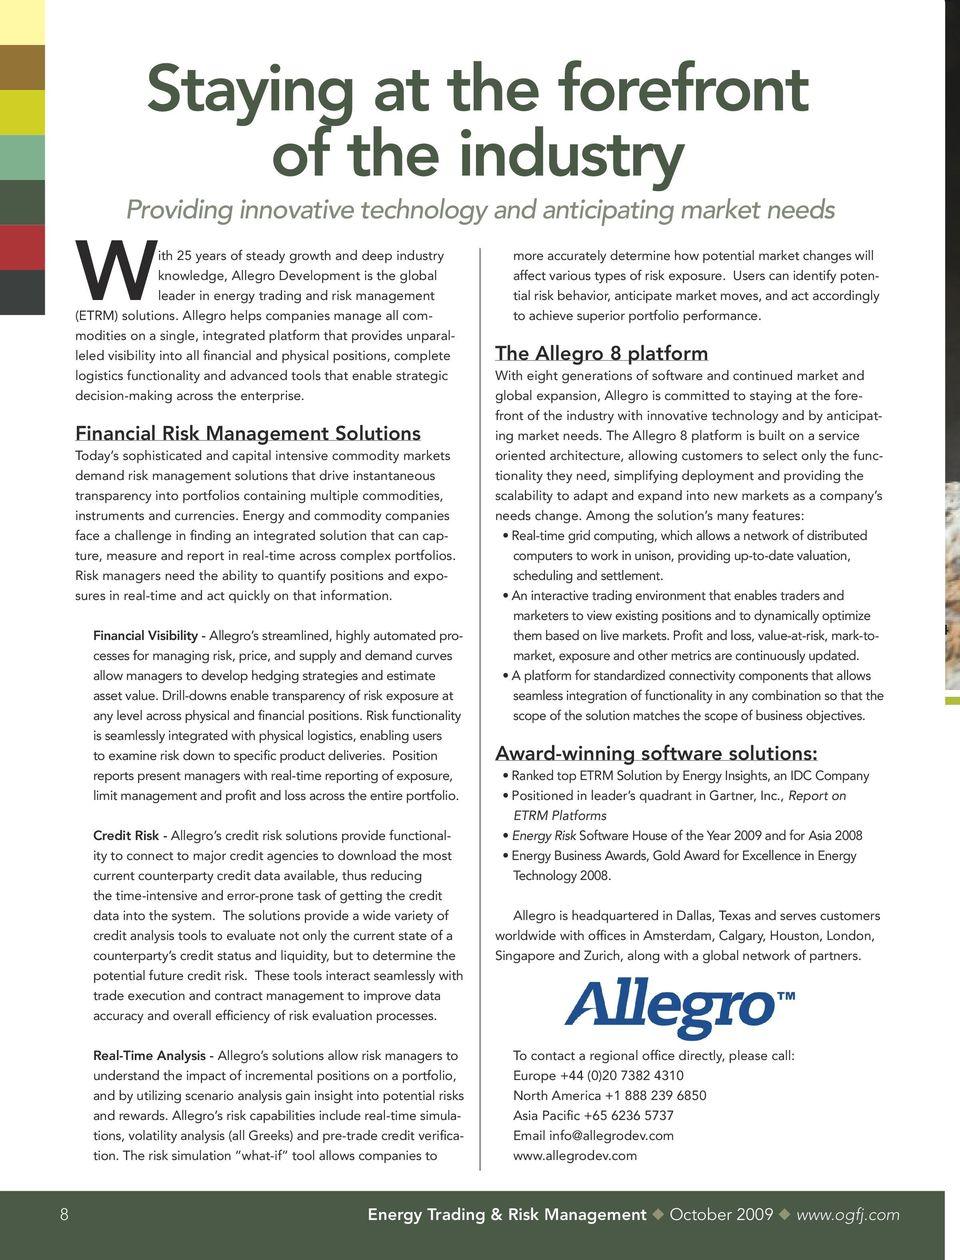 Allegro helps companies manage all commodities on a single, integrated platform that provides unparalleled visibility into all financial and physical positions, complete logistics functionality and